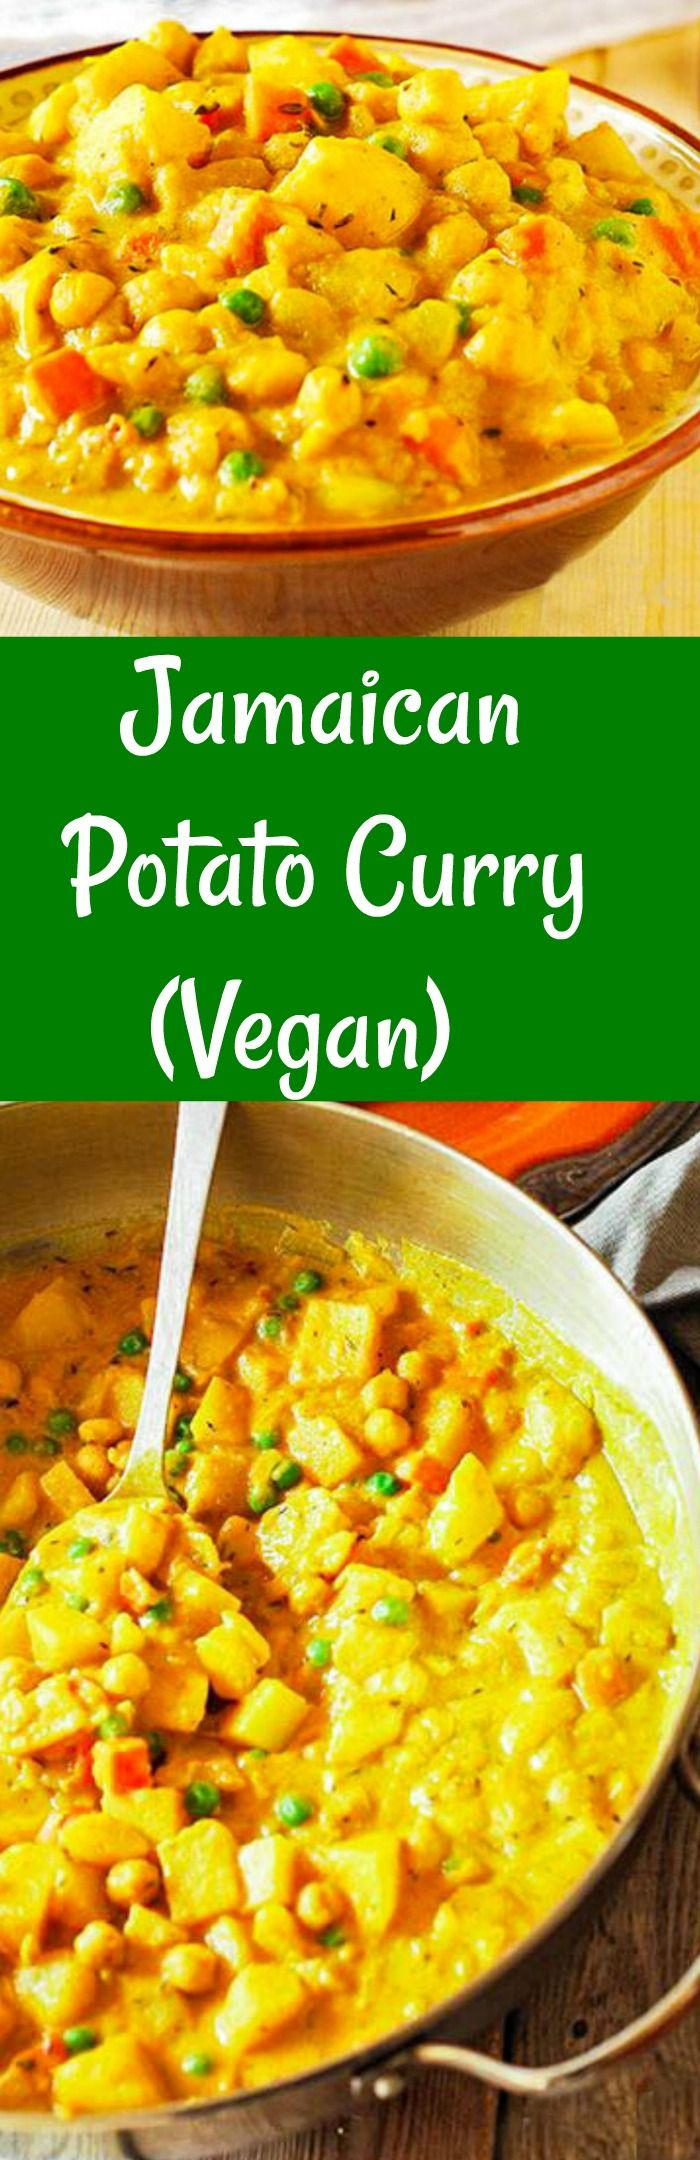 Spicy Potato Curry Vegan